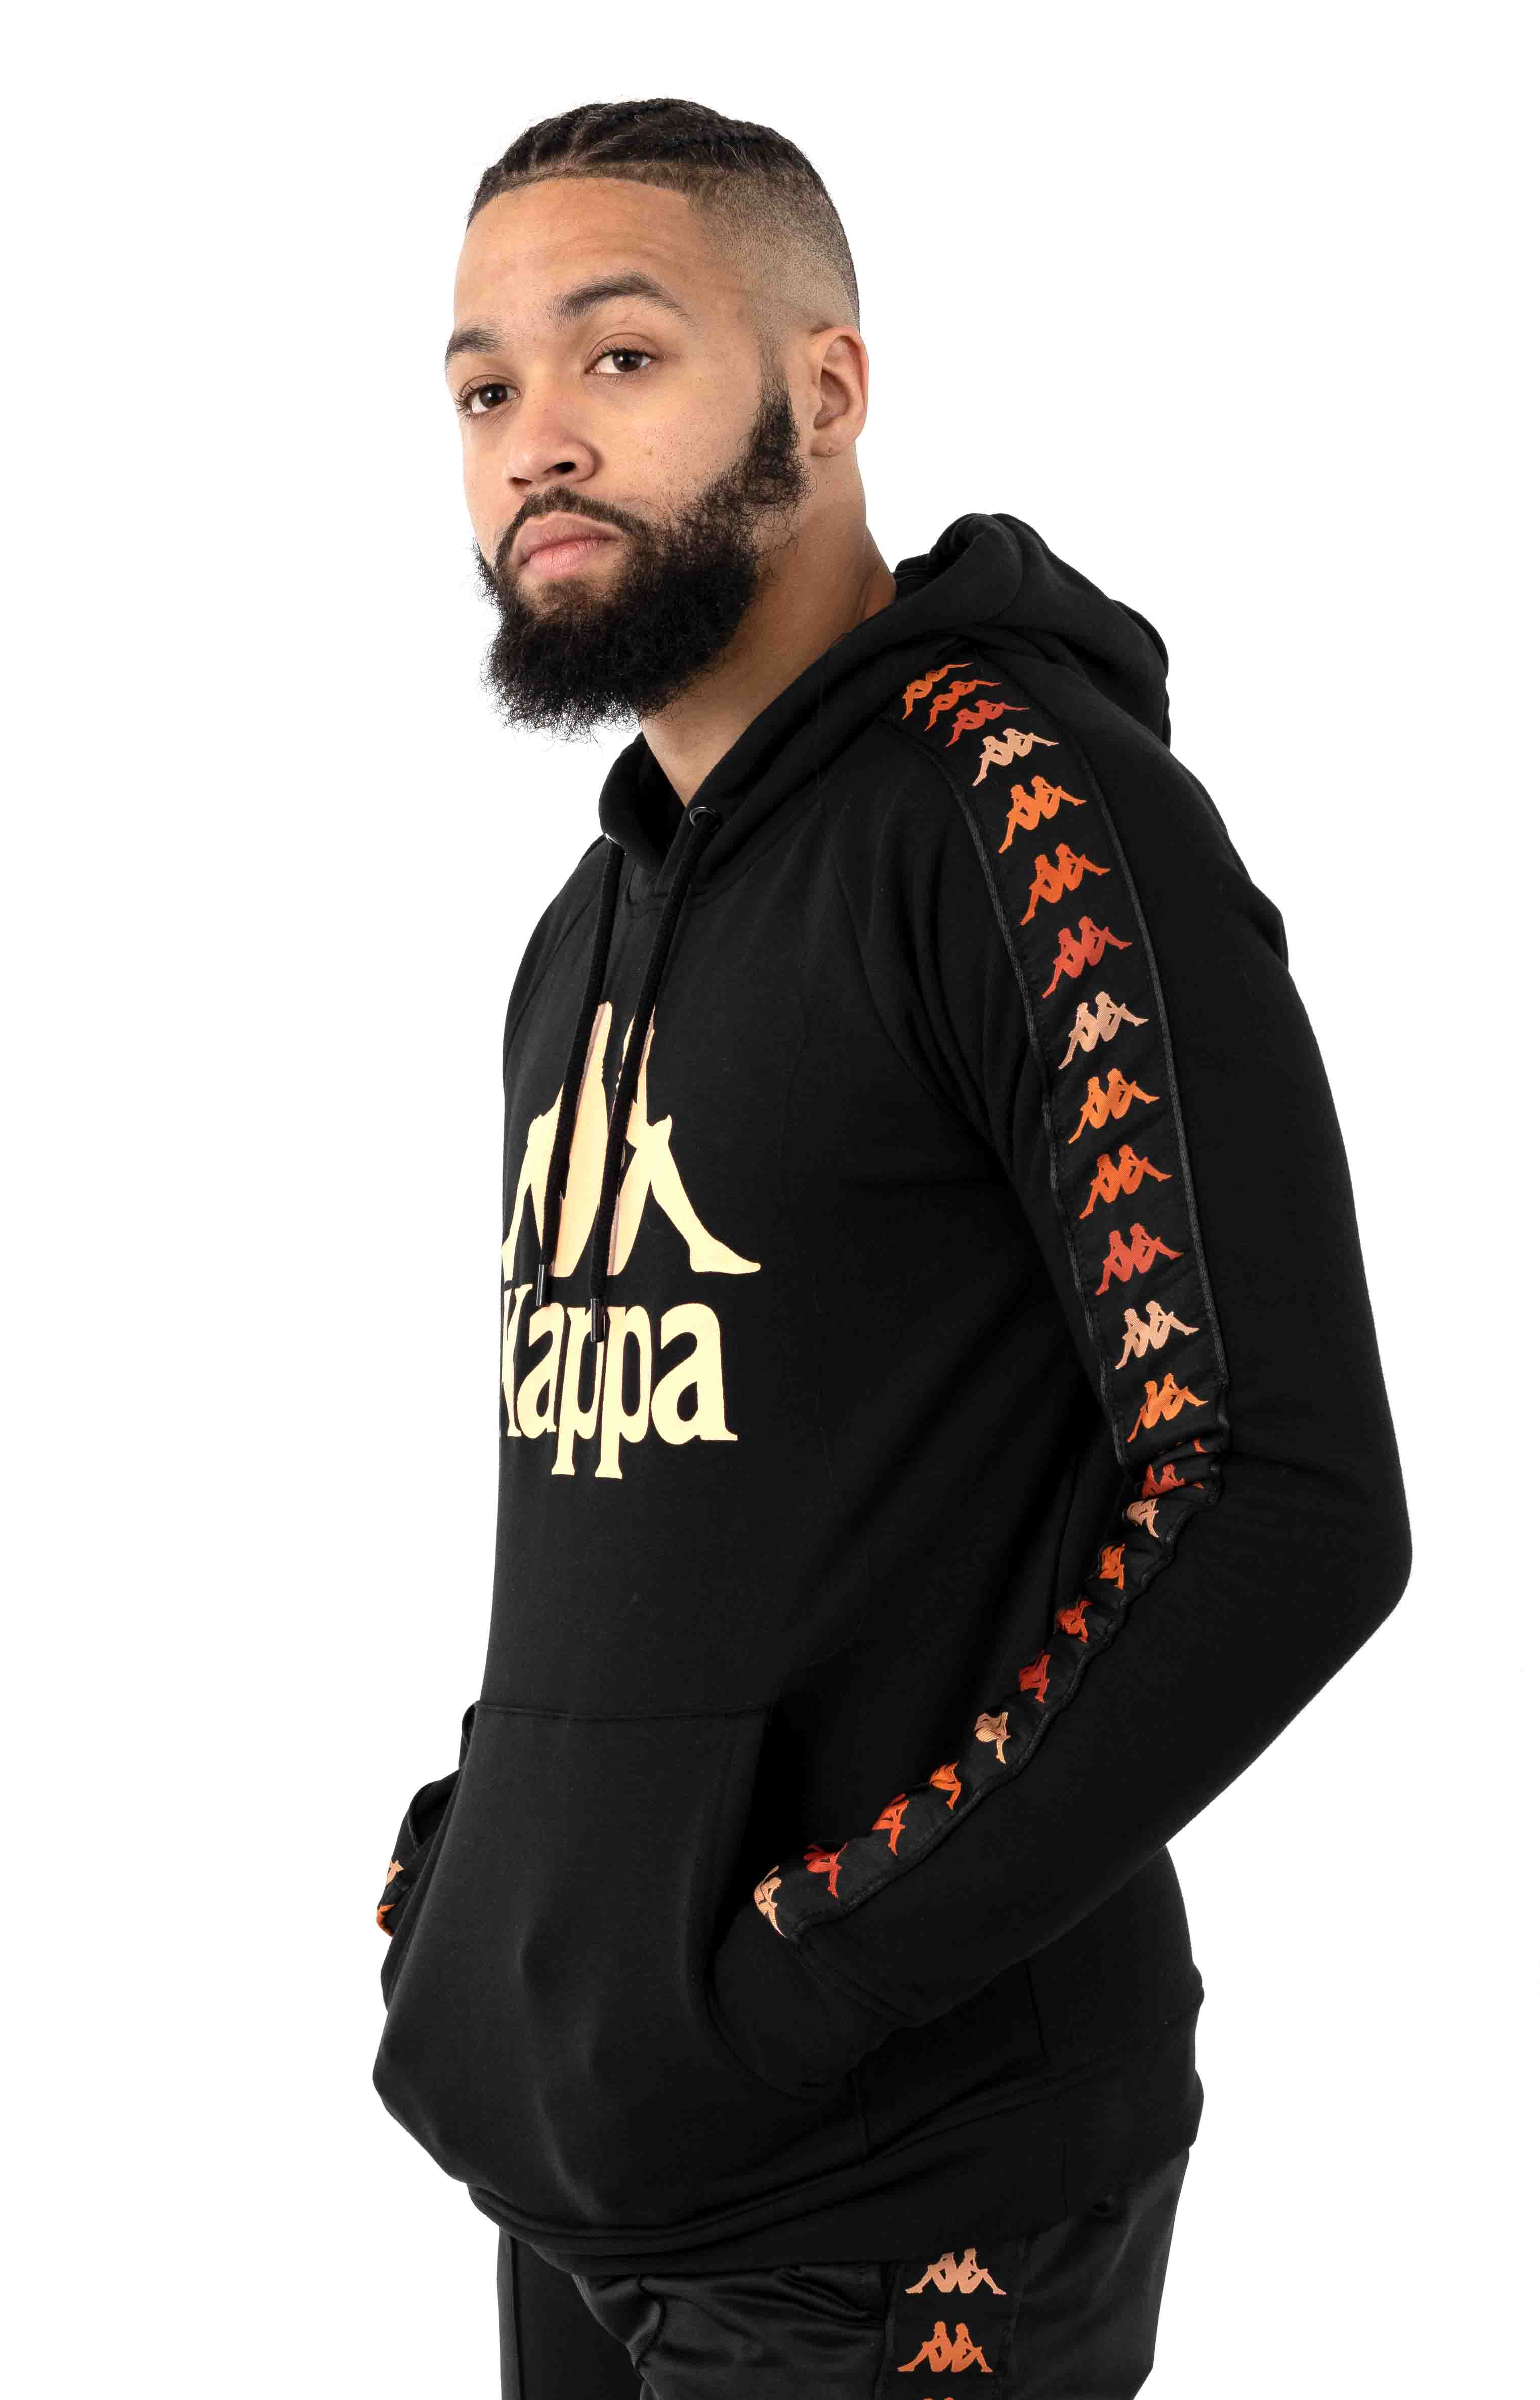 222 Banda Dinto Pullover Hoodie - Black/Apricot 2